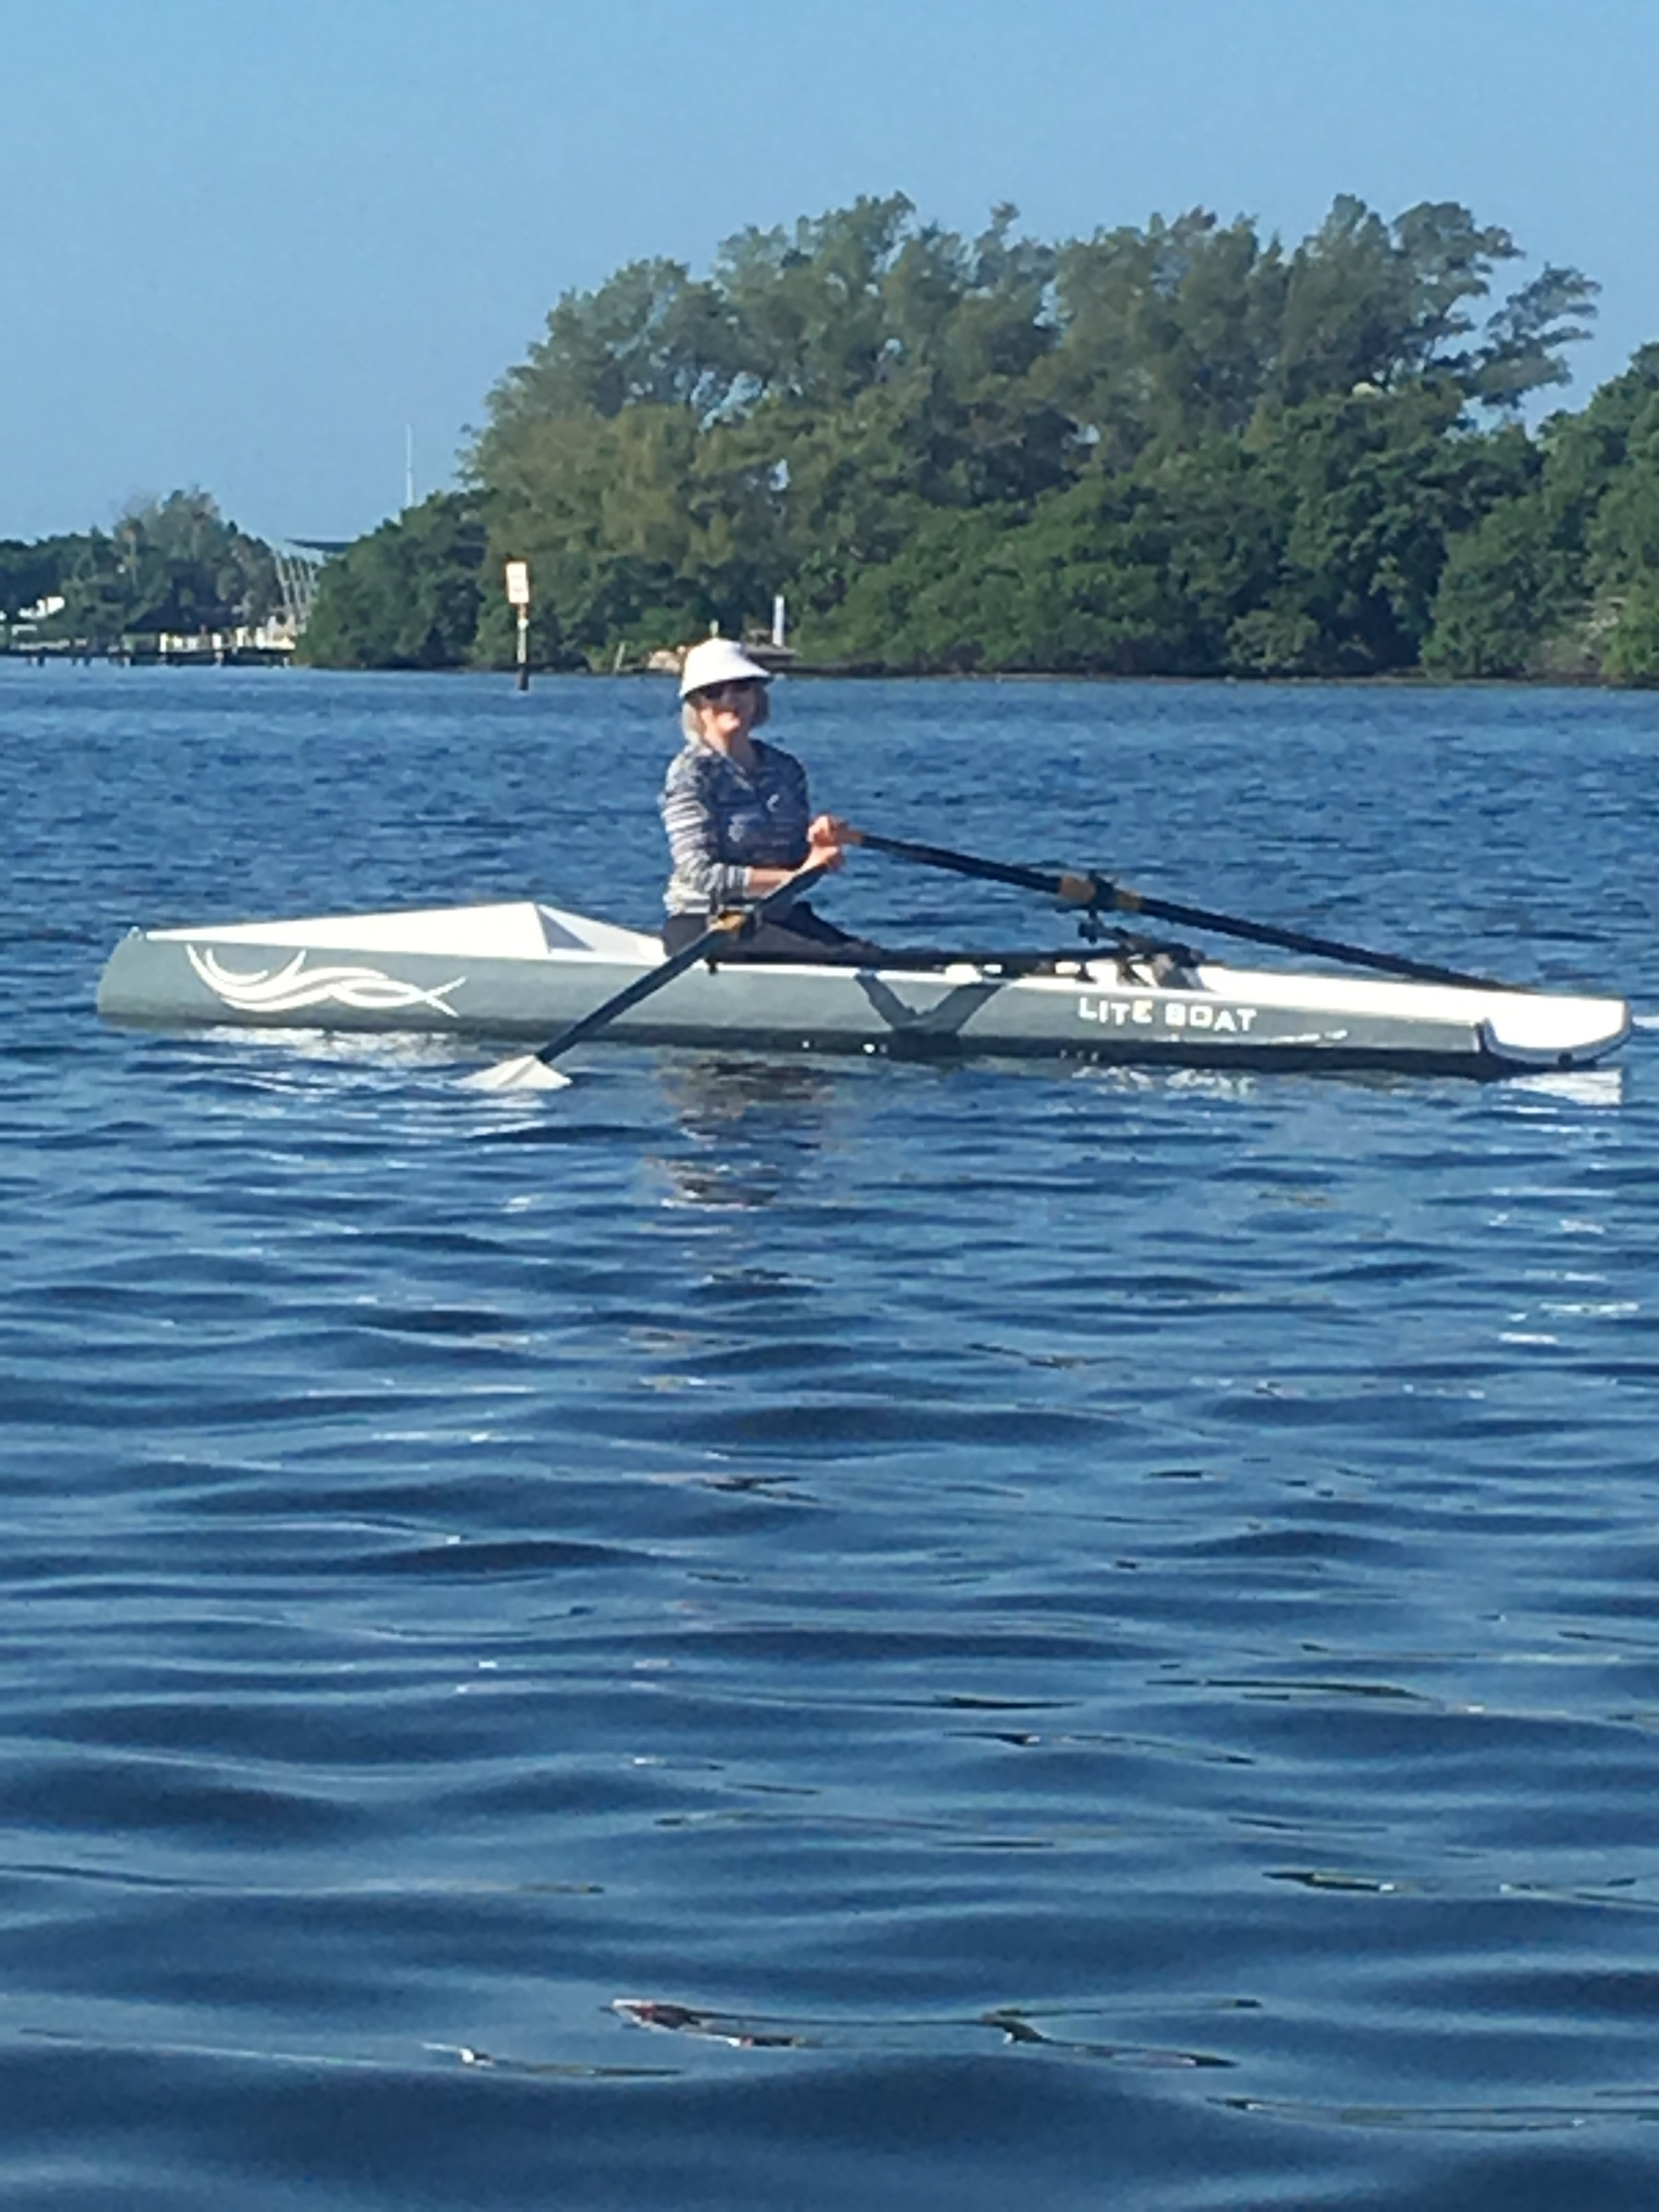 Welcome - Welcome to our newest member of the LiteBoat Family here in her LiteSport+.